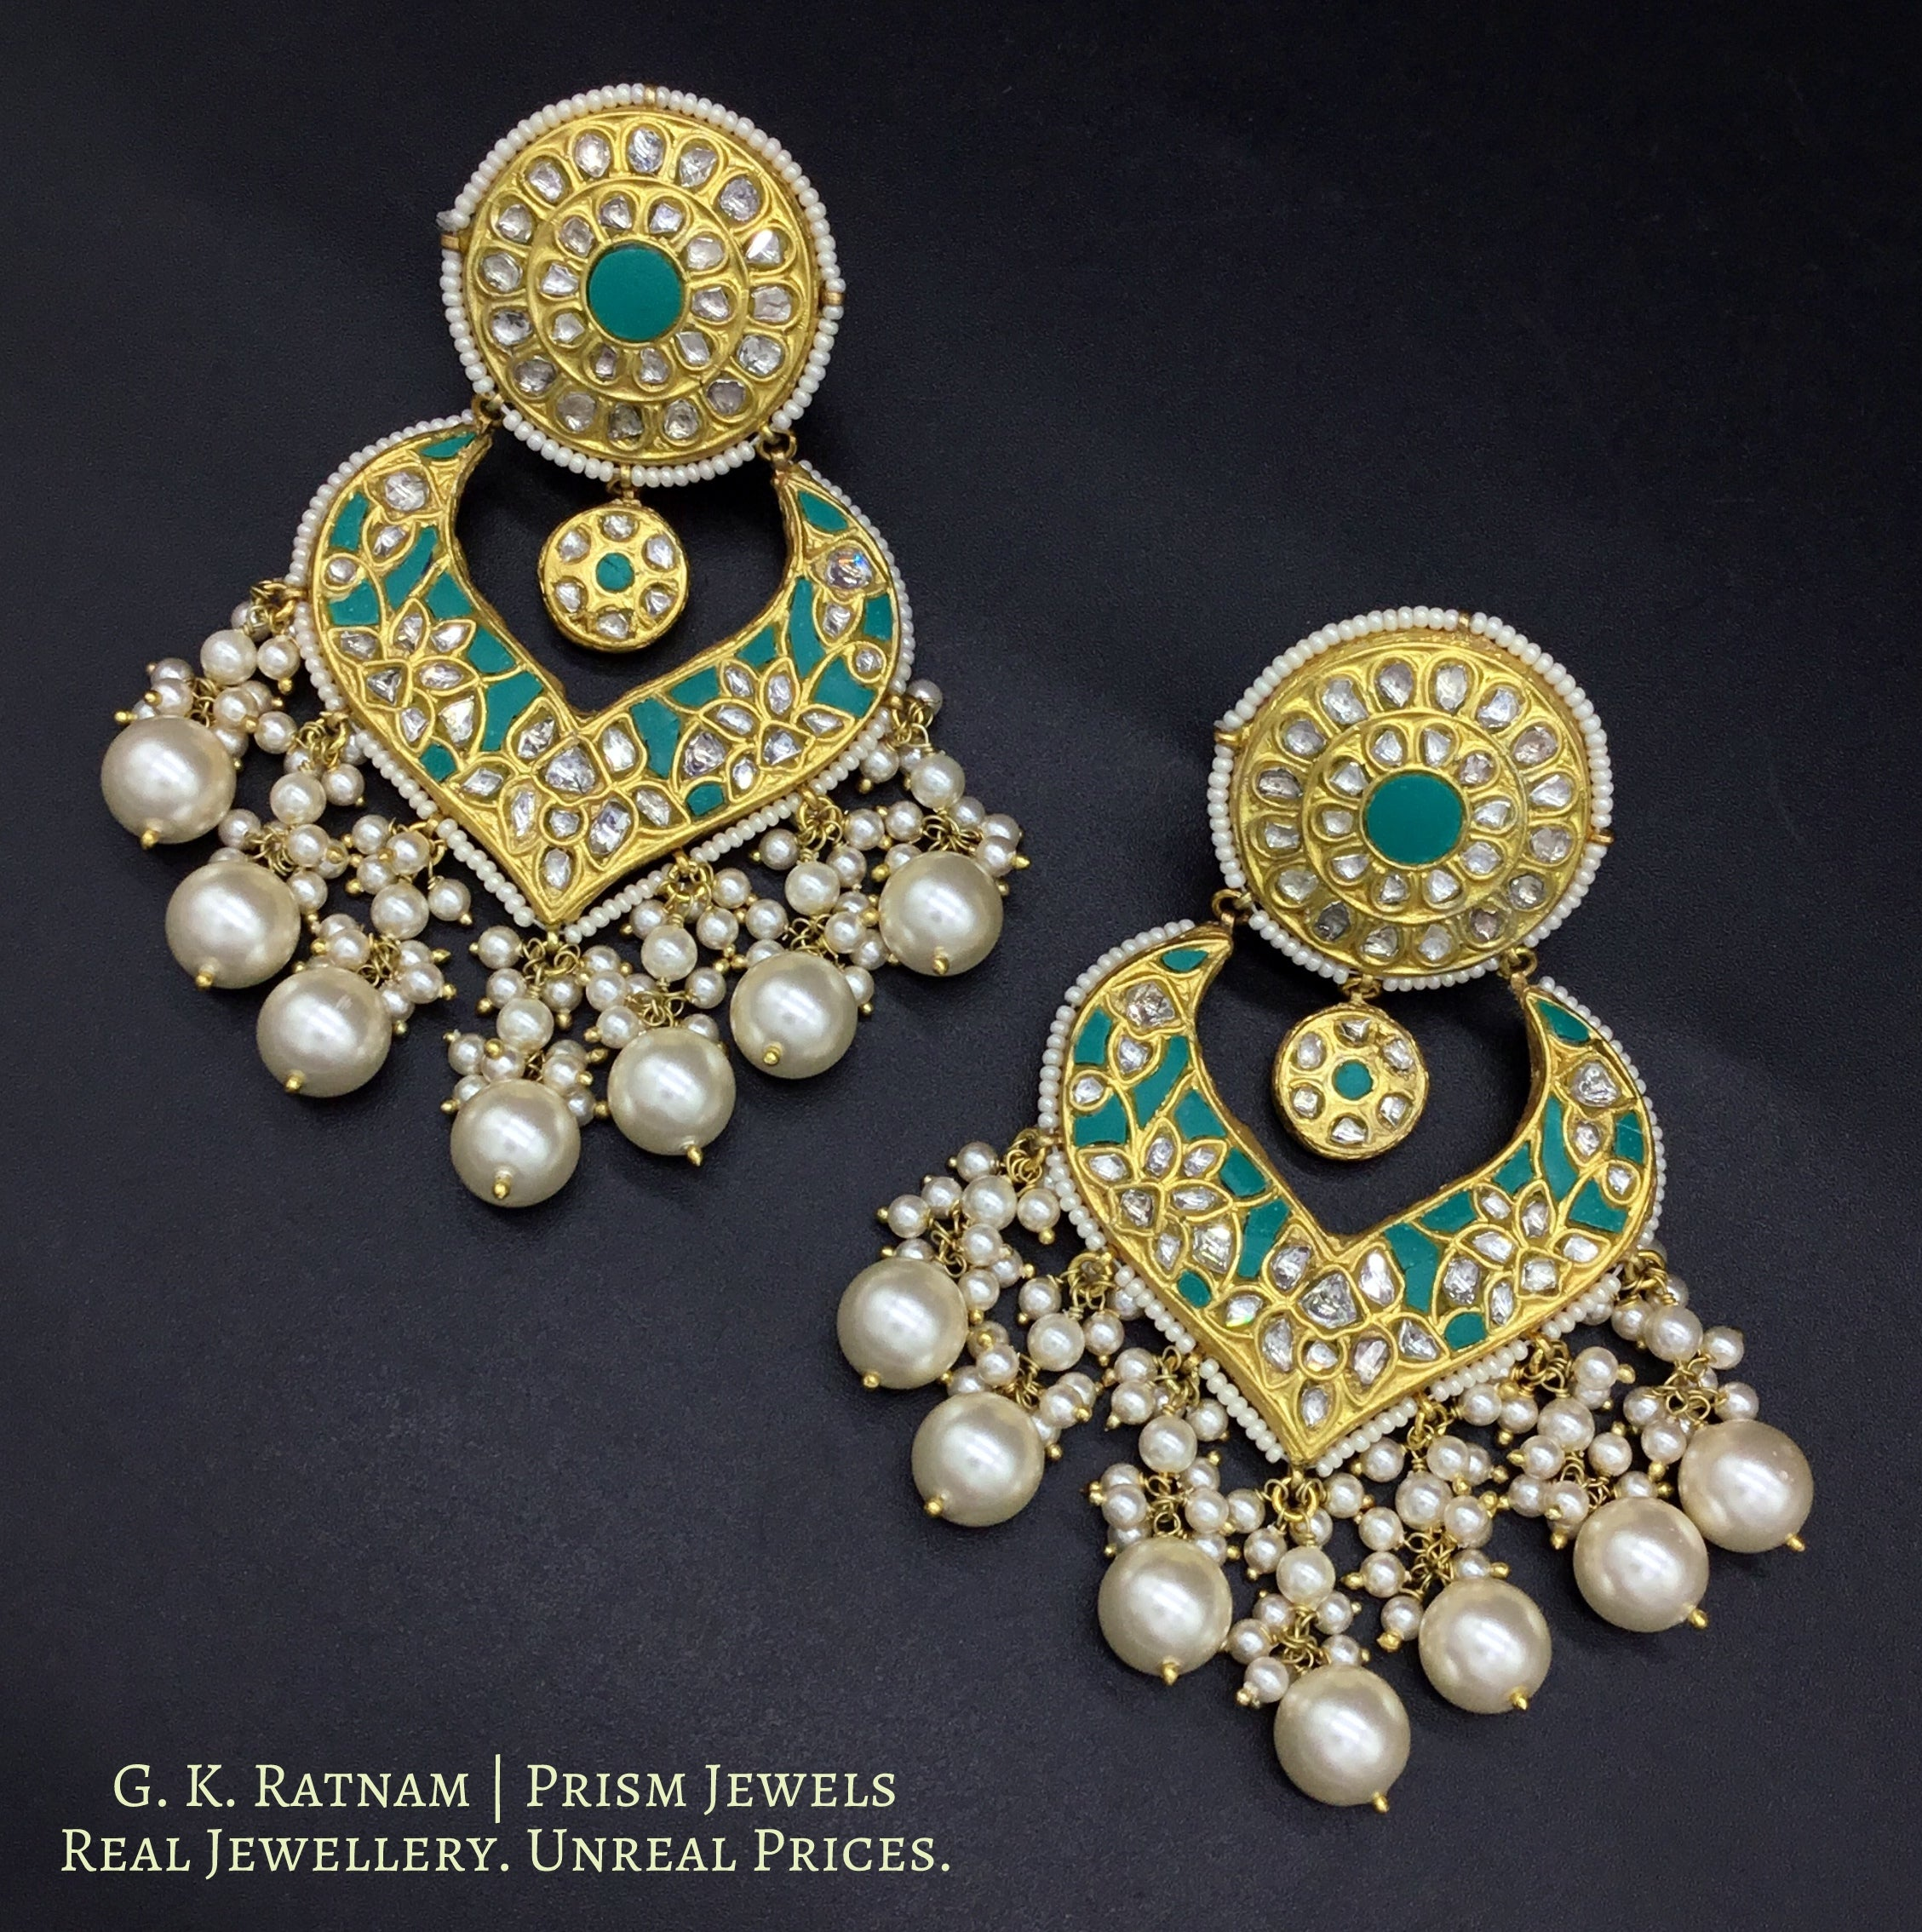 23k Gold and Diamond Polki Chand Bali Earring Pair with V-shaped firoza chand - gold diamond polki kundan meena jadau jewellery